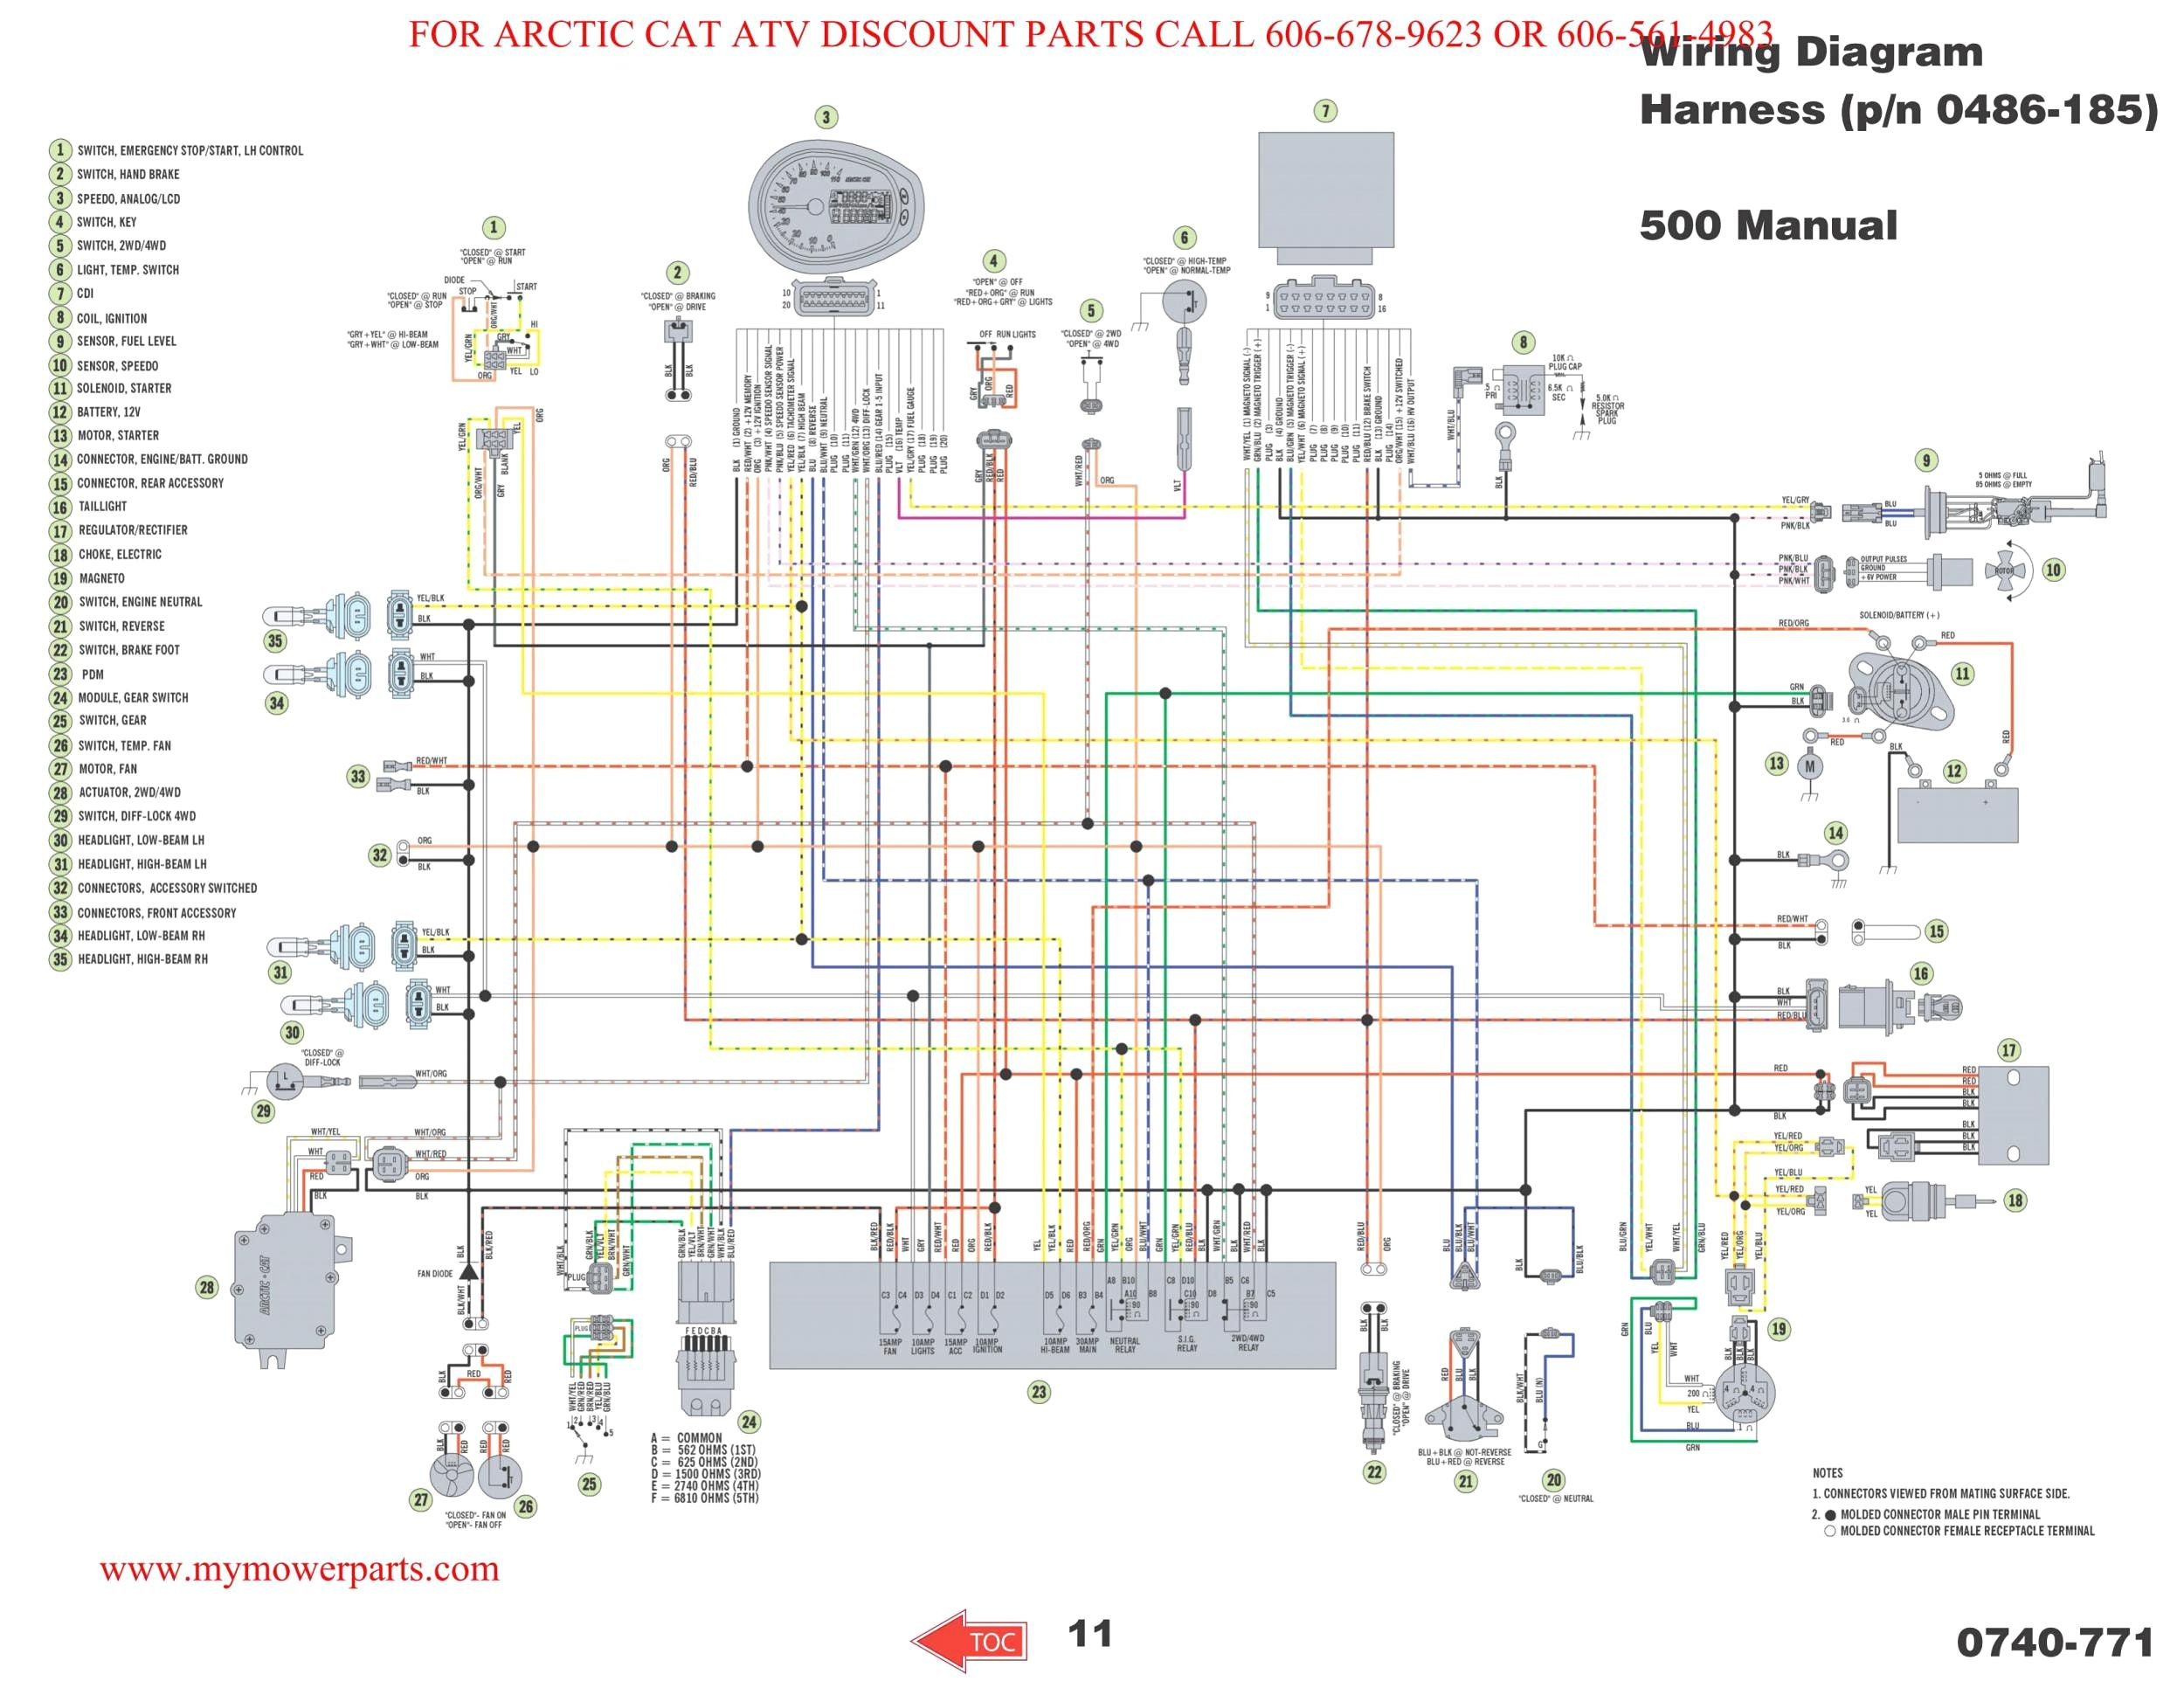 Polaris Ranger 500 Wiring Diagram Polaris Ranger Diagram Ranger